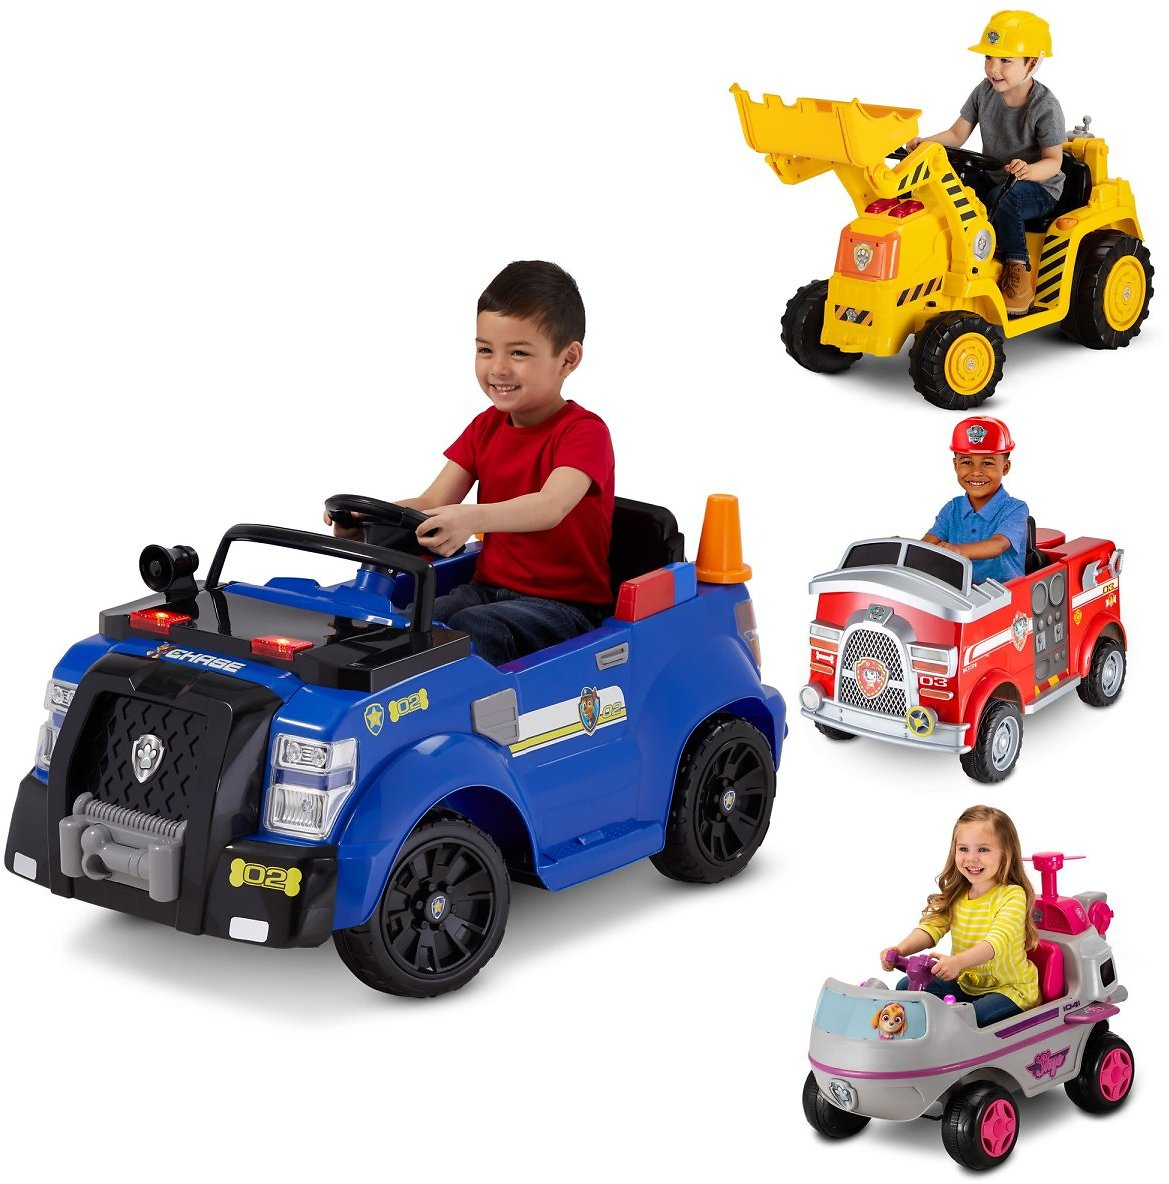 Kid Trax Nickelodeon Paw Patrol Chase Police Cruiser 6-Volt Toy - 3 Styles